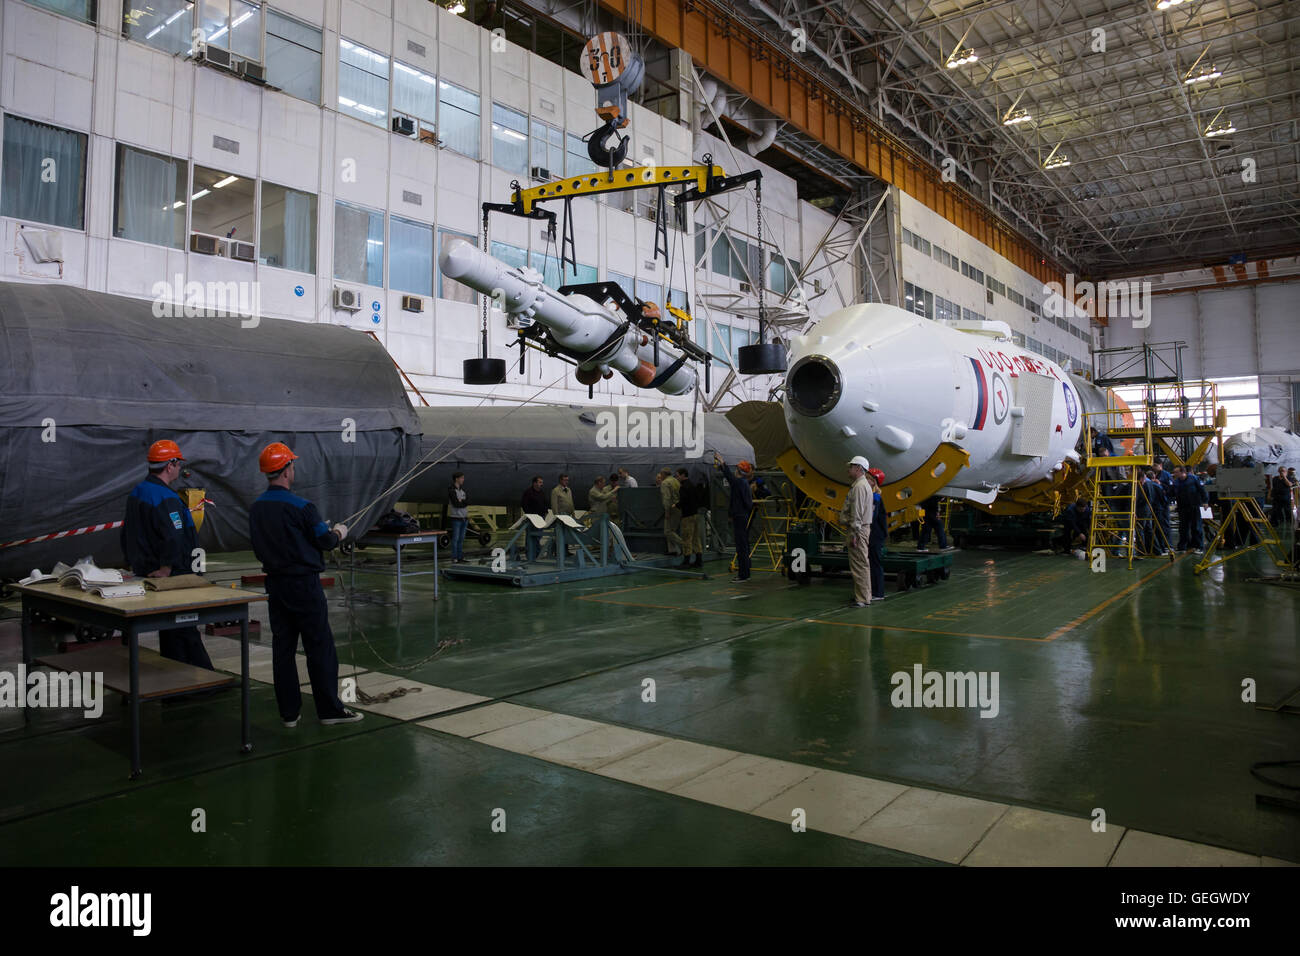 Expedition 47 Soyuz Final Assembly  03150001 - Stock Image